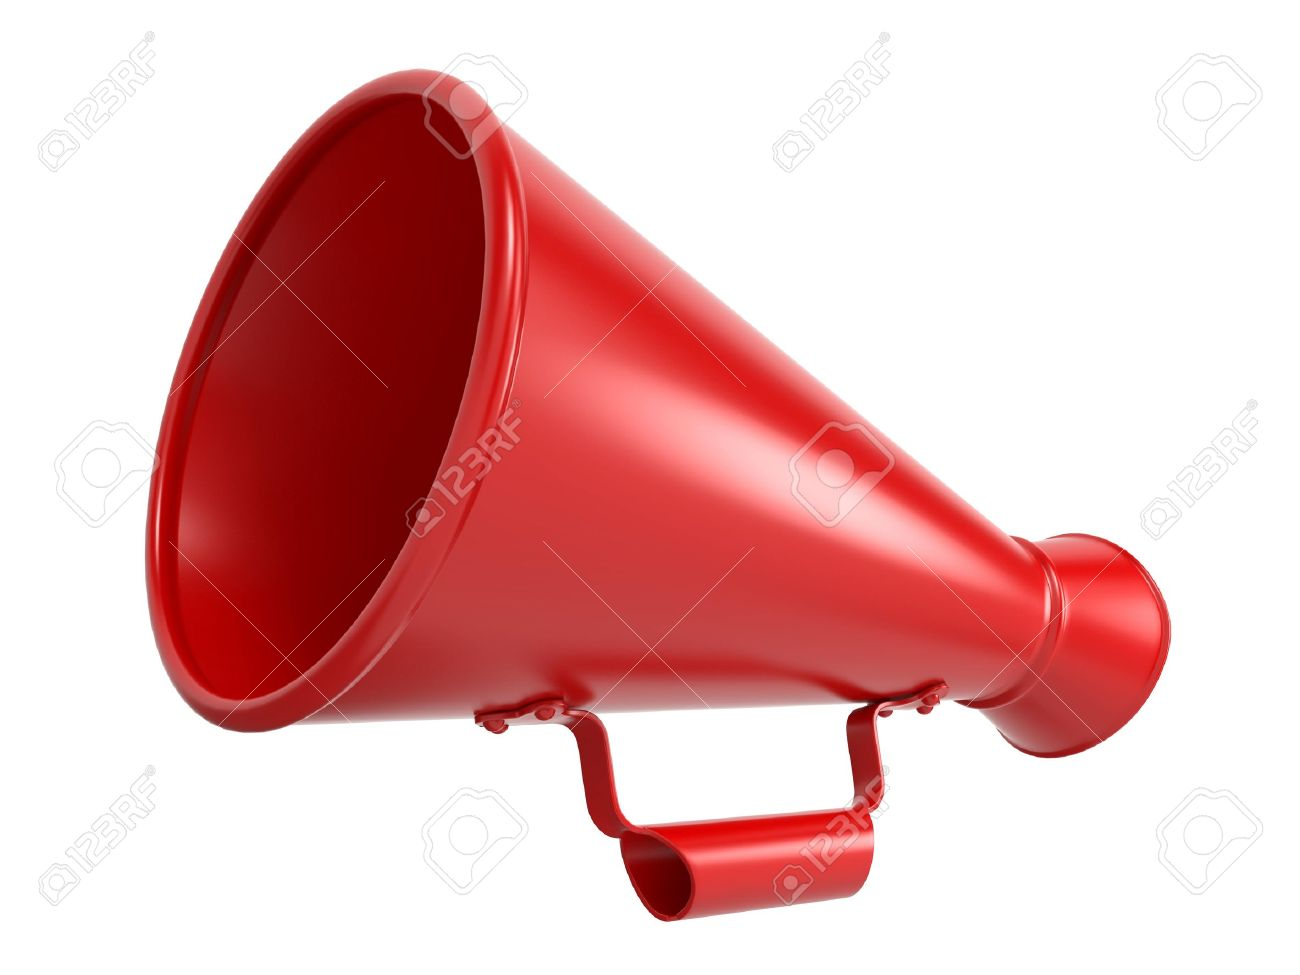 image of megaphone Red Megaphone Or Bullhorn Isolated On White Stock Photo, Picture And ...